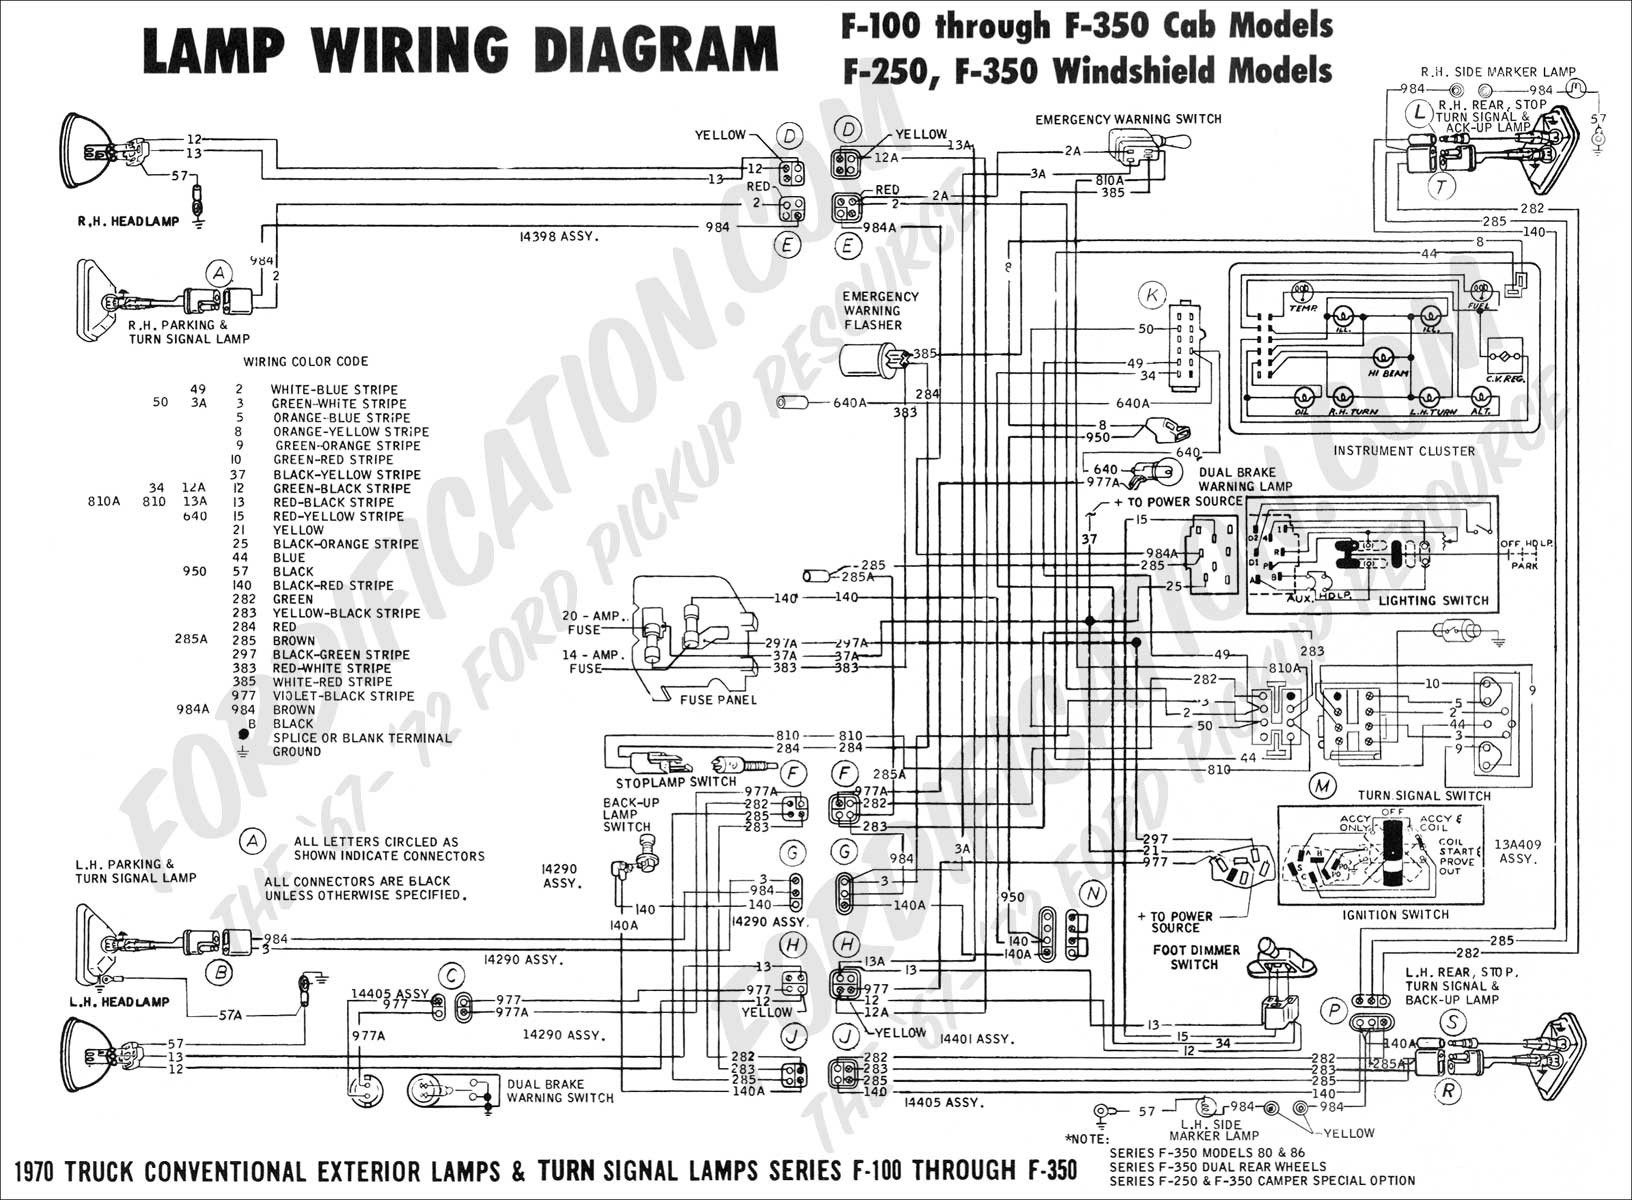 2013 ford F150 Wiring Diagram ford Truck Technical